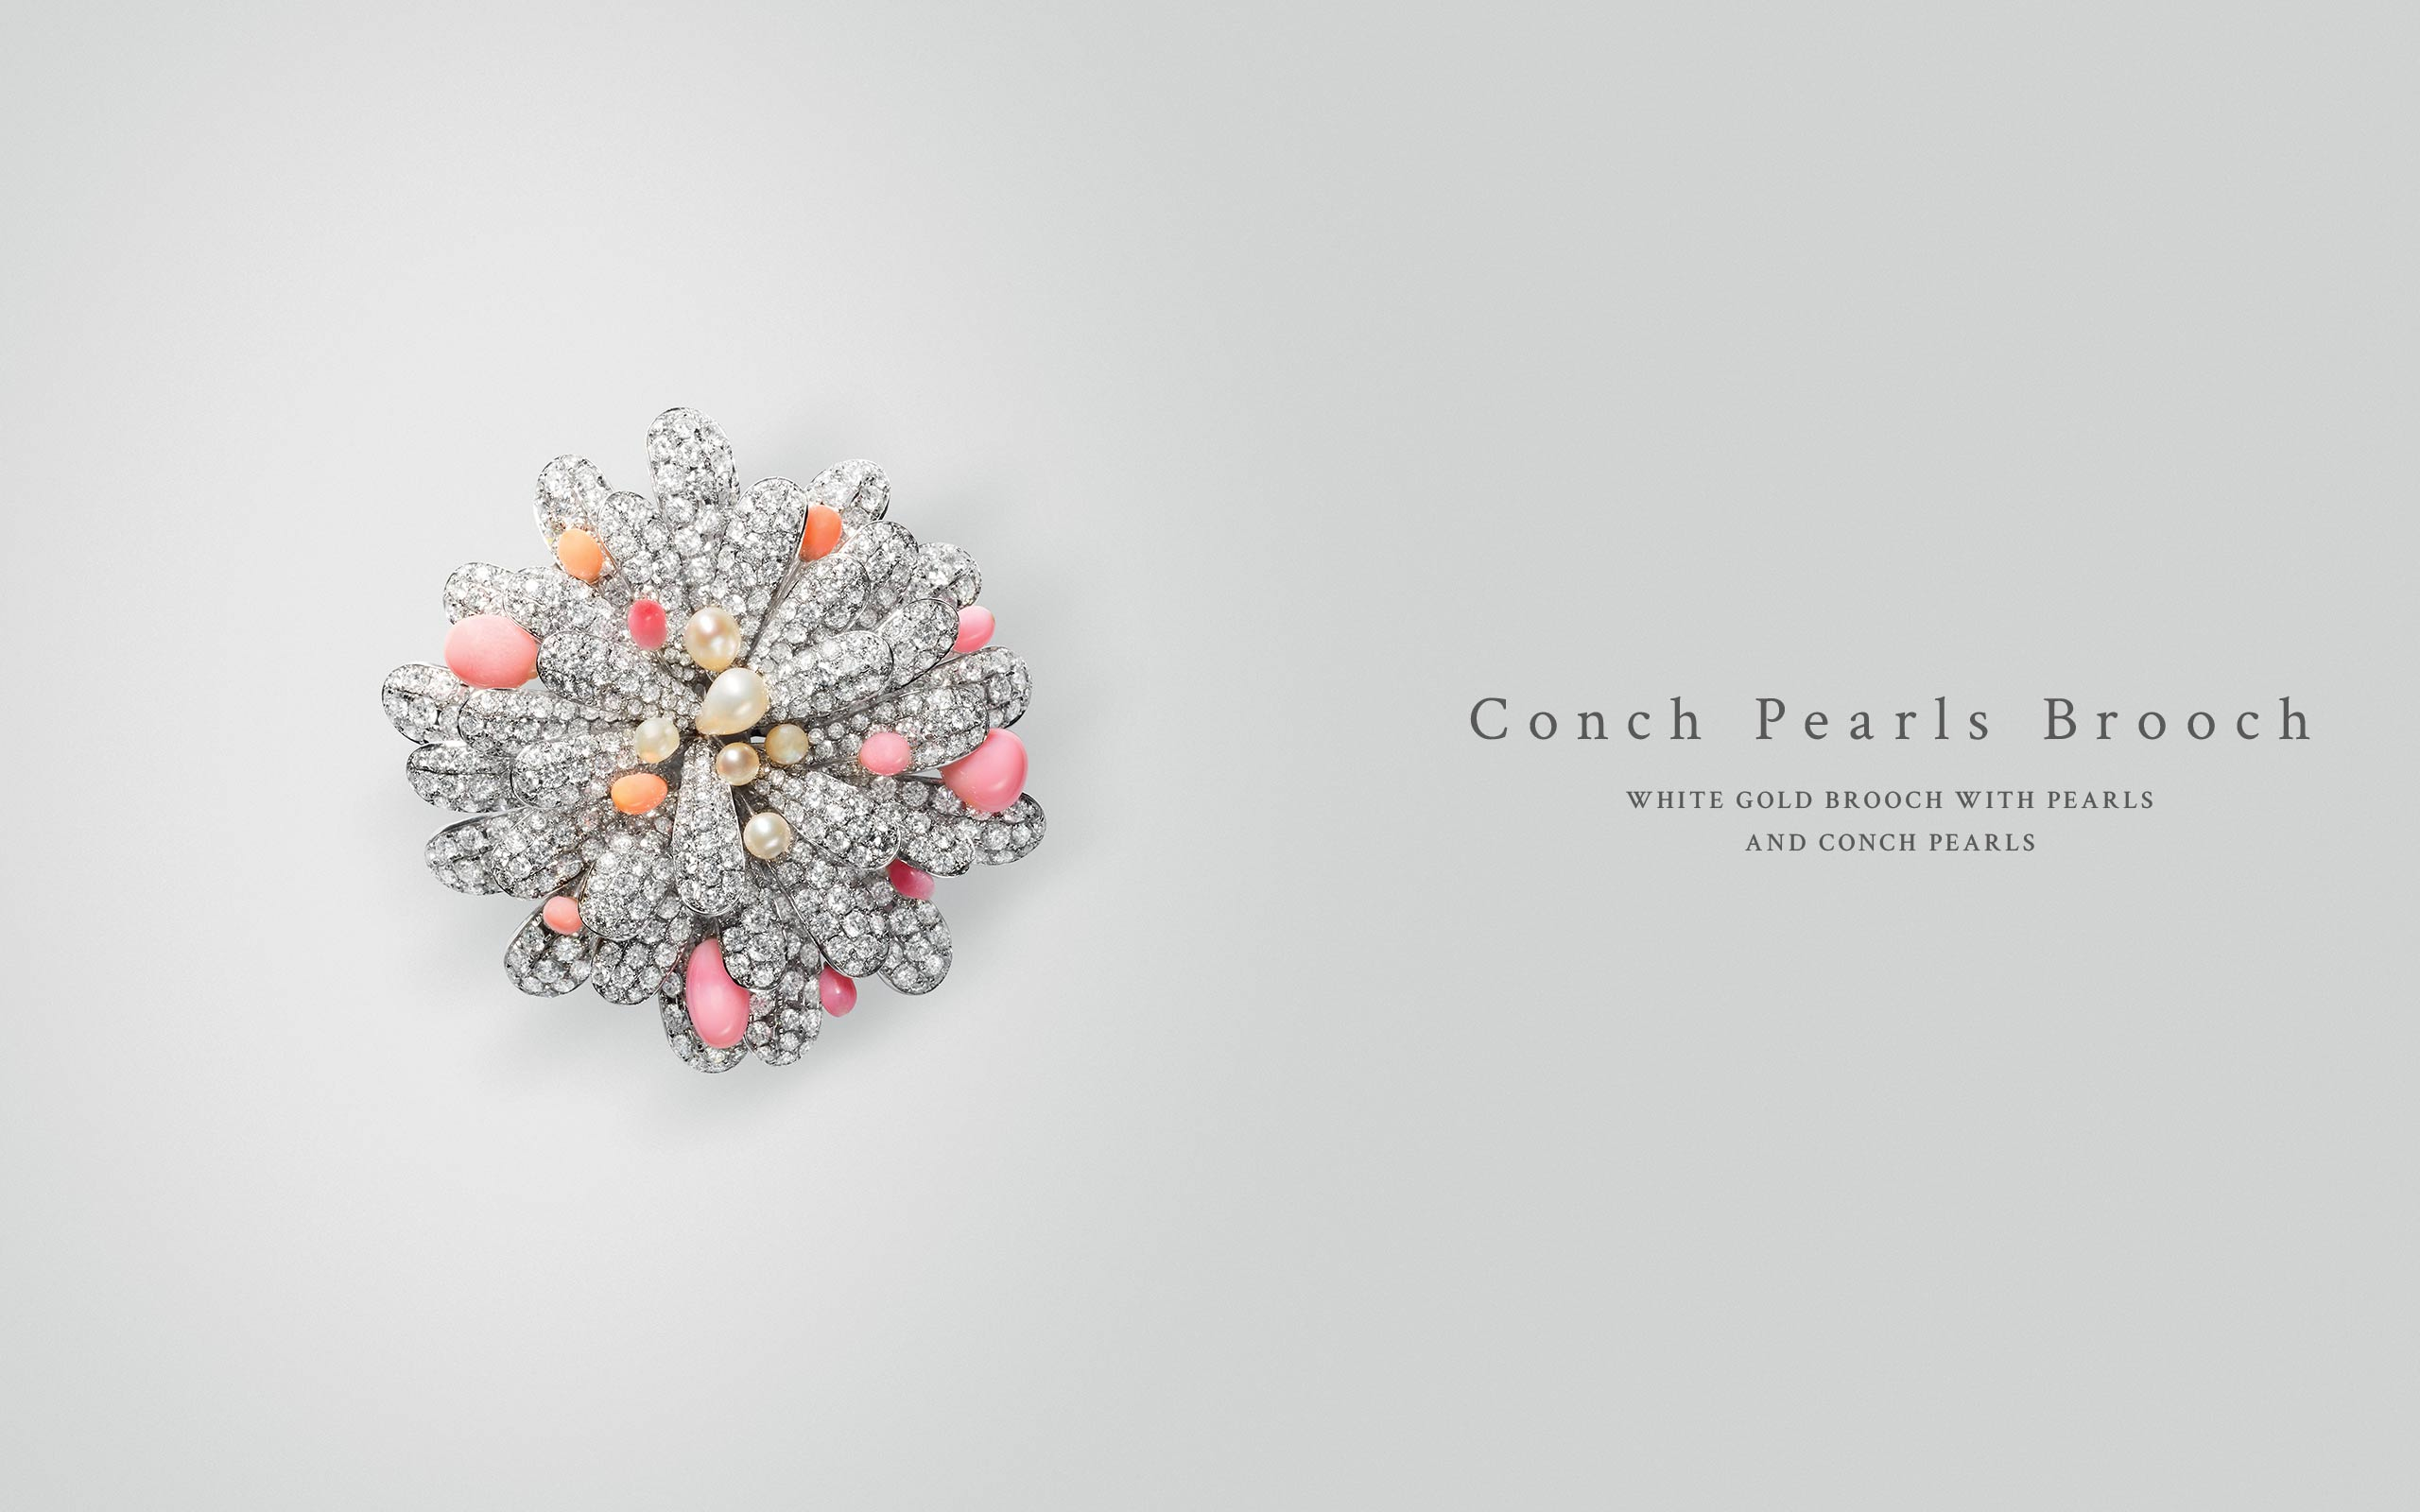 Conch Pearls Brooch 09 | Maria Gaspari